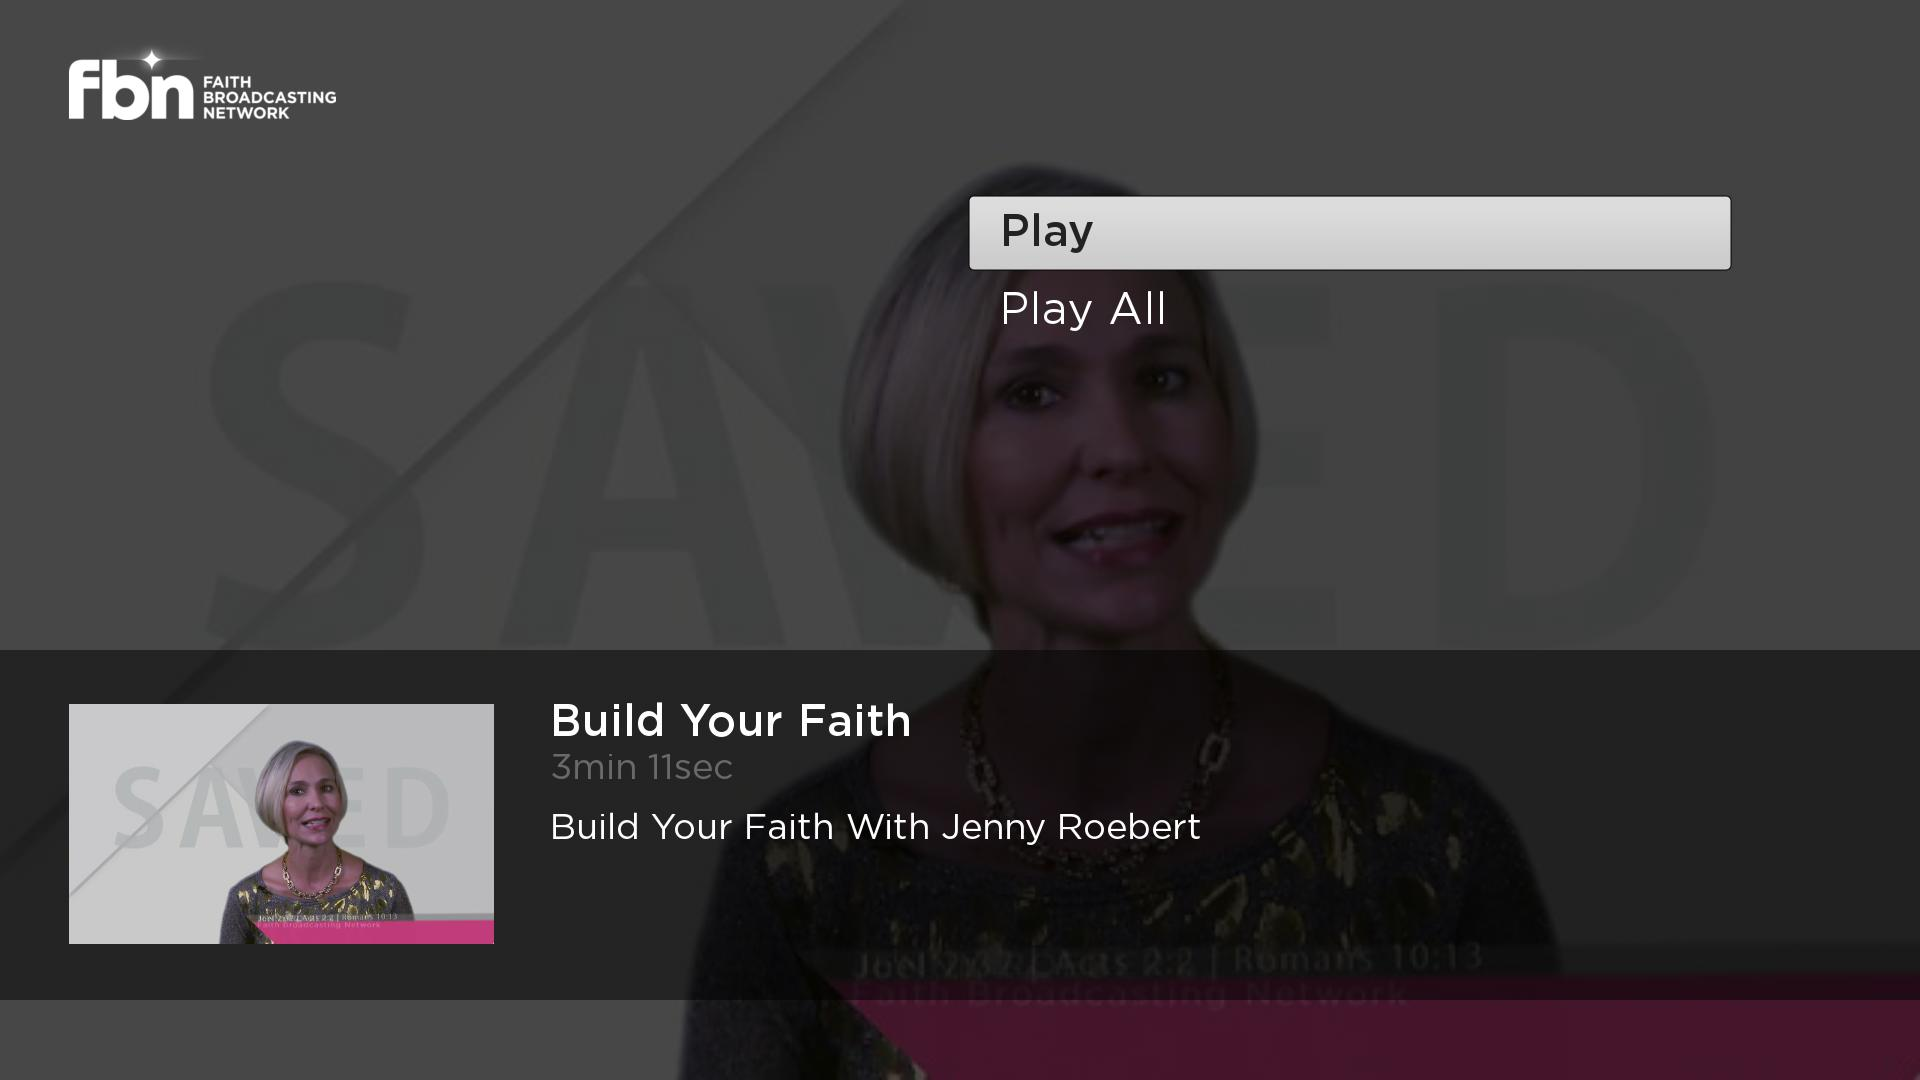 Faith Broadcasting Network Screenshot 003